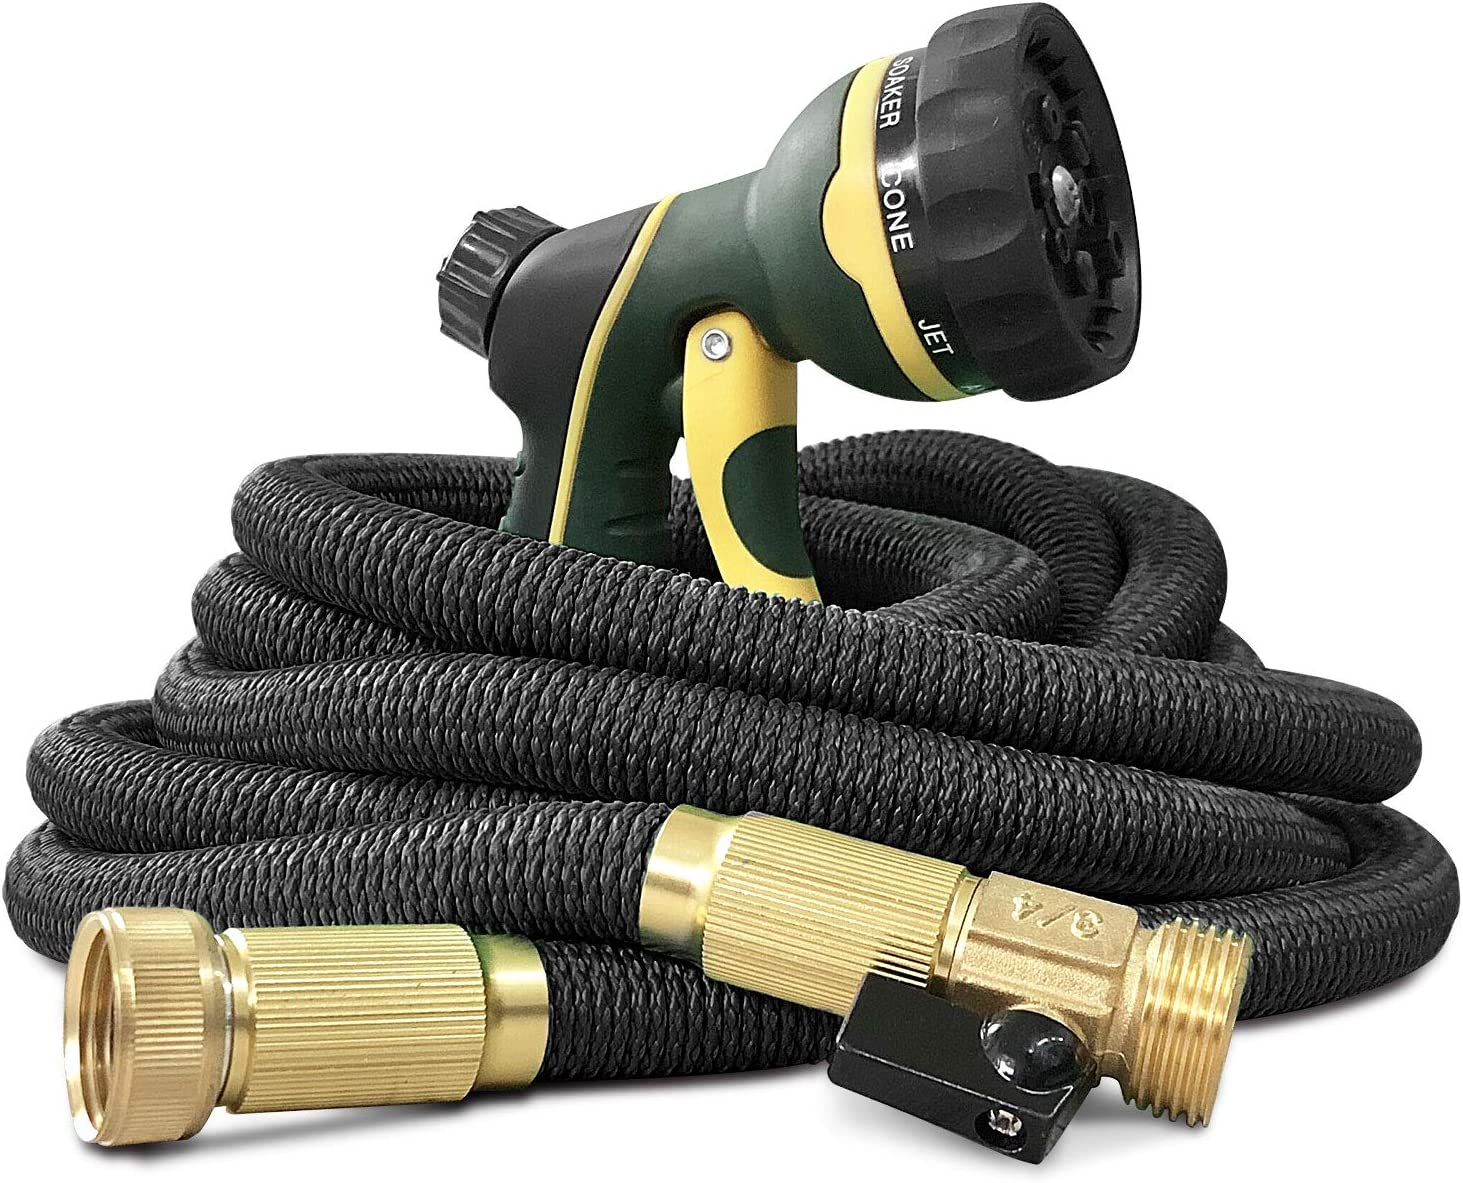 NGreen Garden Hose Flexible and Expandable - Collapsible Water Hose with Solid Brass Fittings and Spray Nozzle, Lightweight Retractable Leakproof Durable Gardening Hose Easy Storage Kink Free (50 FT)